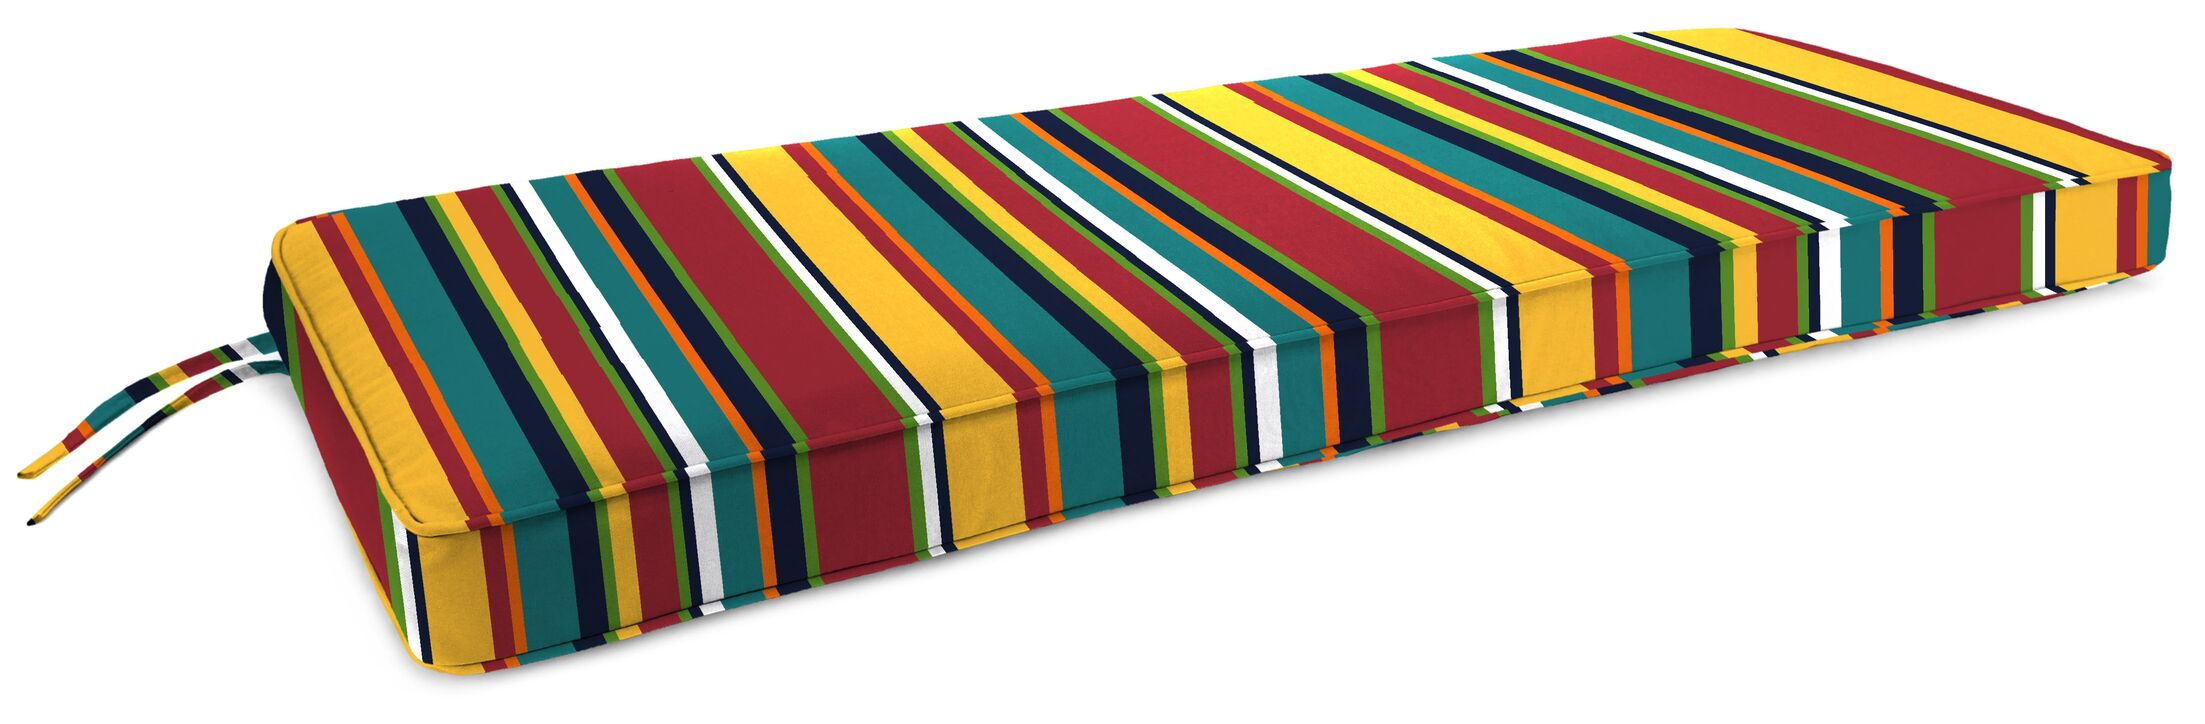 Boxed Indoor/Outdoor Bench Cushion Fabric: Red/White